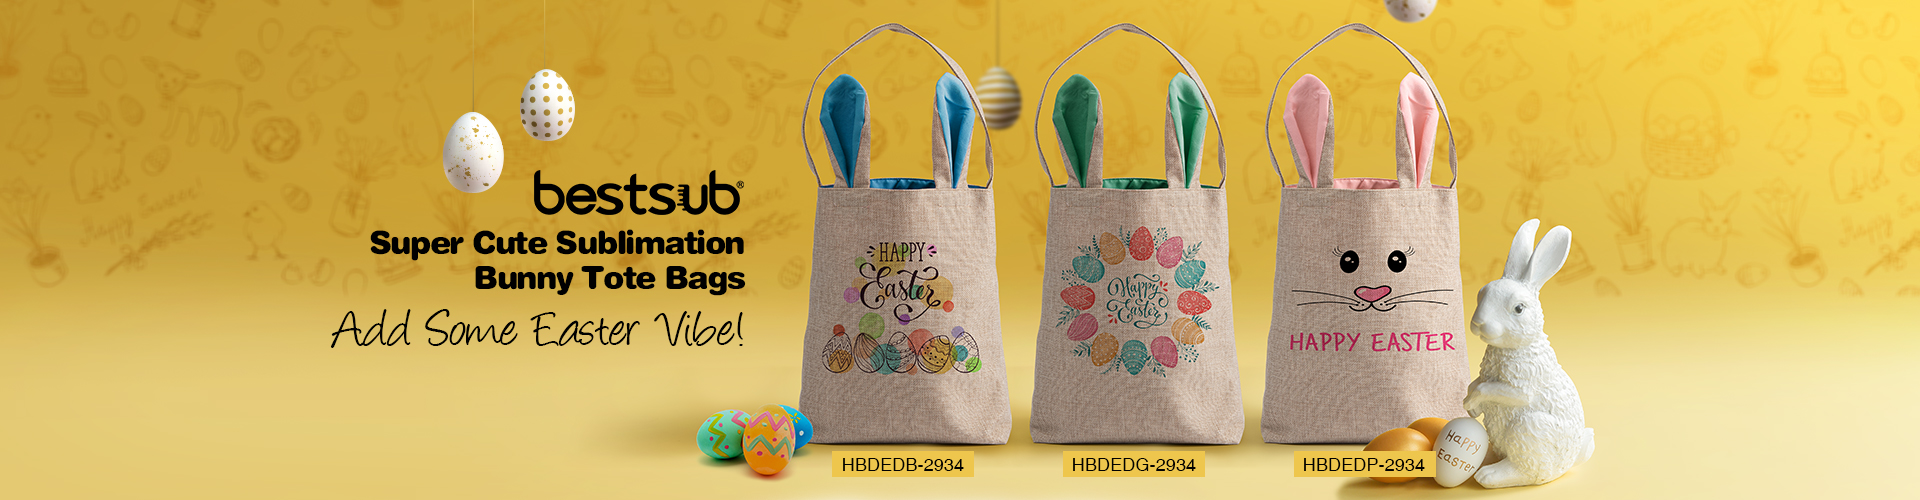 2021-02-19_Super_Cute_Sublimation_Bunny_Tote_Bags_new_web